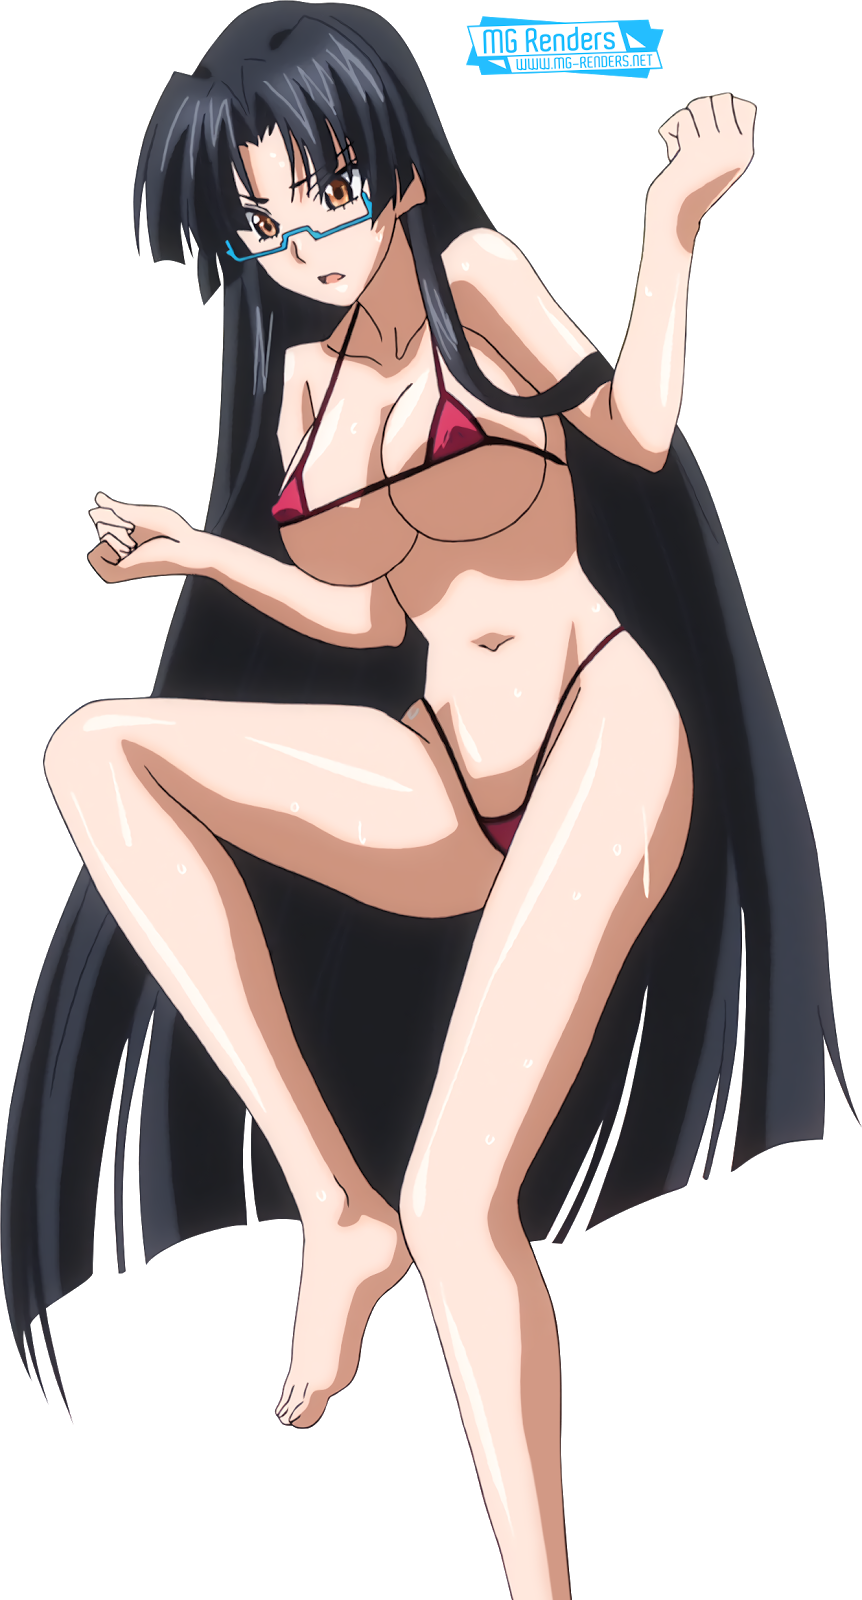 Tags: Anime, Render,  Feet,  High School DxD, ハイスクールD×D, Haisukūru D×D,  Huge Breasts,  Micro Bikini,  Shinra Tsubaki,  Toes,  PNG, Image, Picture